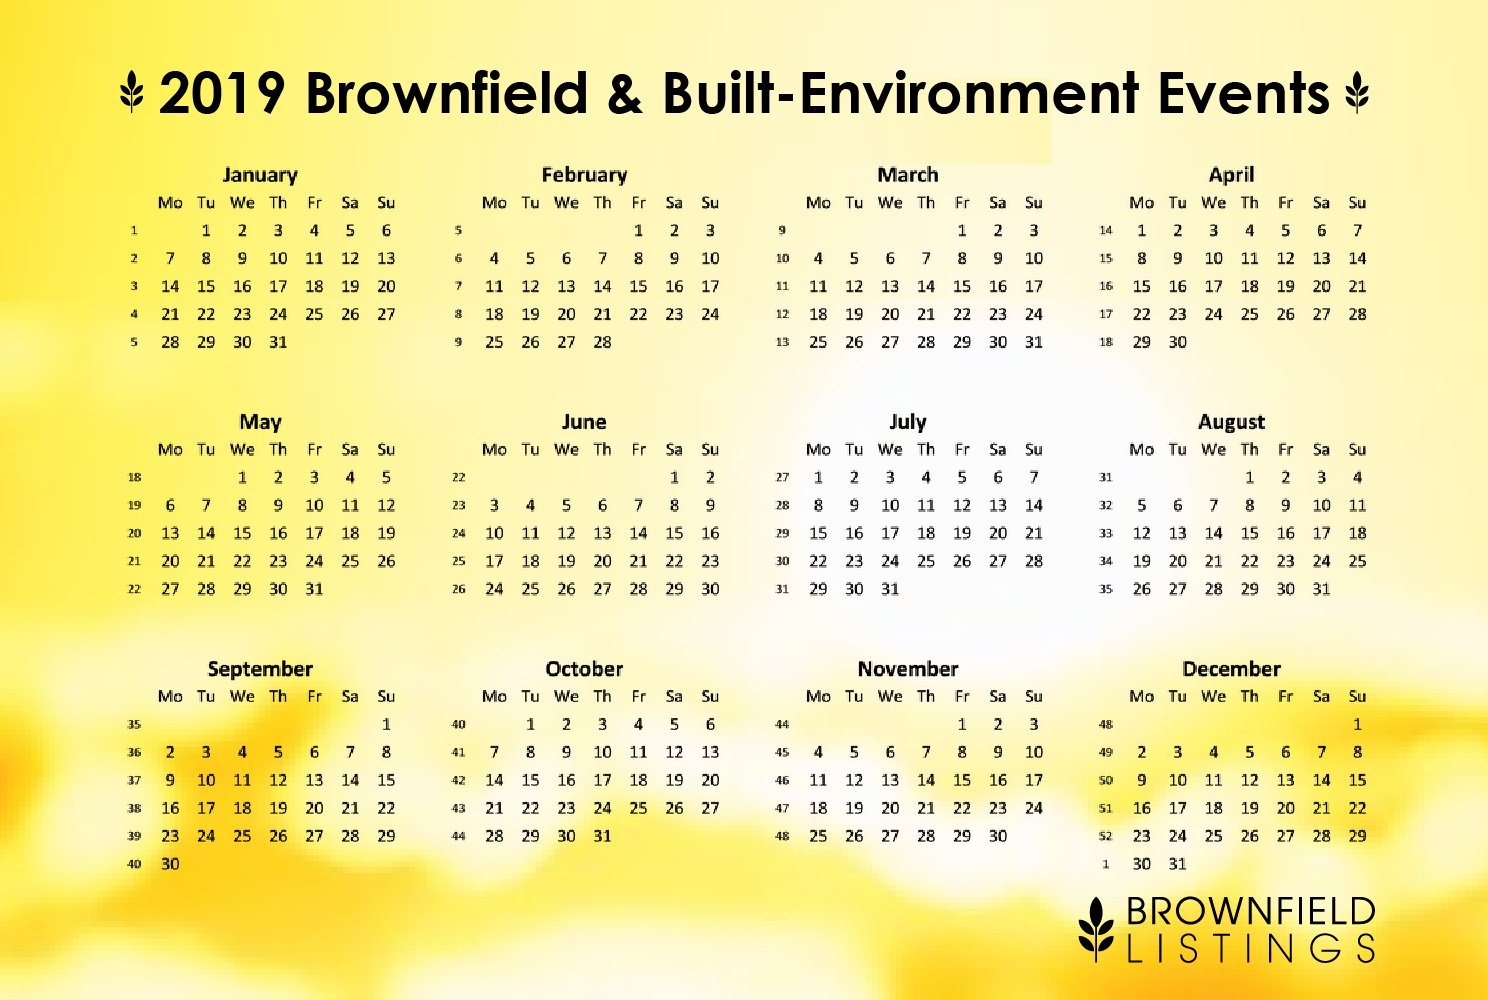 Brownfield Listings   2019 Brownfield Conferences And Built regarding Community Calender Sydney October 2019